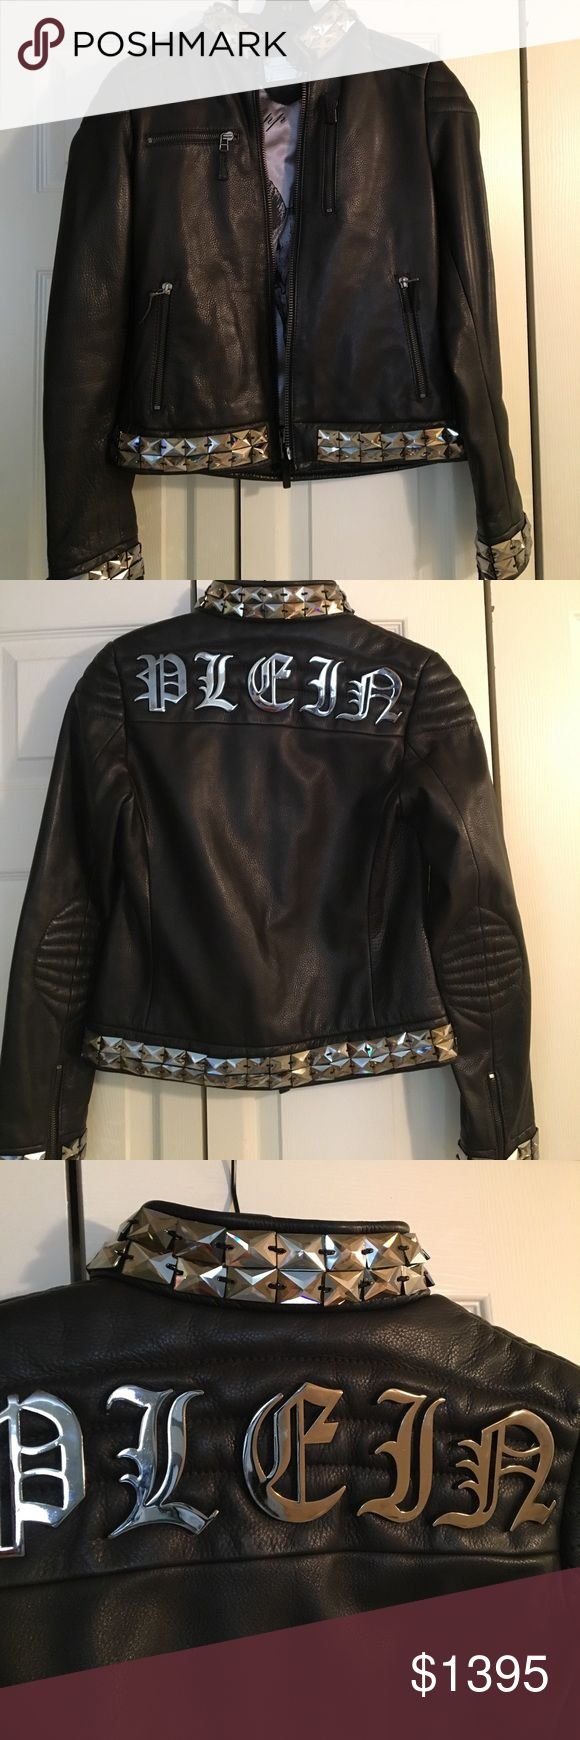 Authentic Philipp Plein Black leather jacket This Philipp Plein leather jacket has been worn twice. All Swarovski crystals around collar and wrists with zipper details. Absolutely gorgeous was $5500 now asking $1395 OBO but please be reasonable. Philipp Plein Jackets & Coats